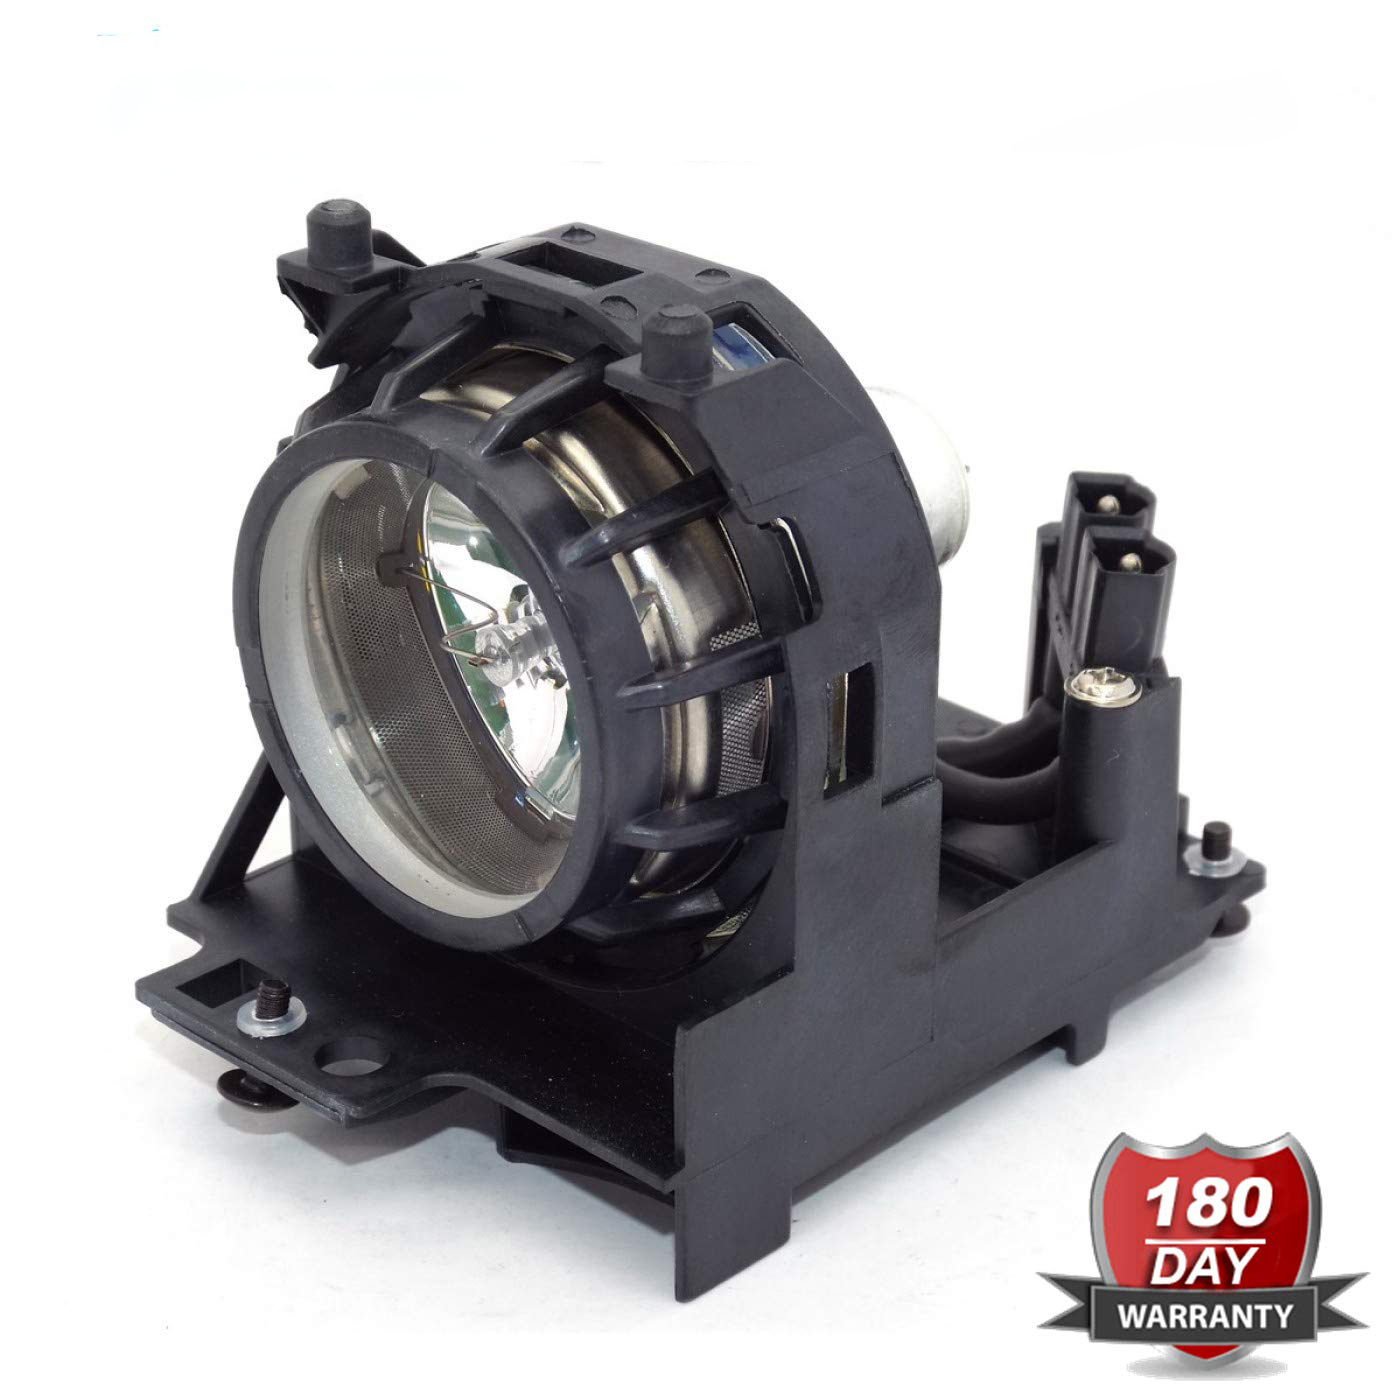 DT00581 Projector Lamp For 3M:H10/S10/S20/Boxlight SP11I Hitachi CPS210/CPS210F/CPS210T/CPS210W/PJLC5/PJLC5W/CP-S210WT/CP-S210WF